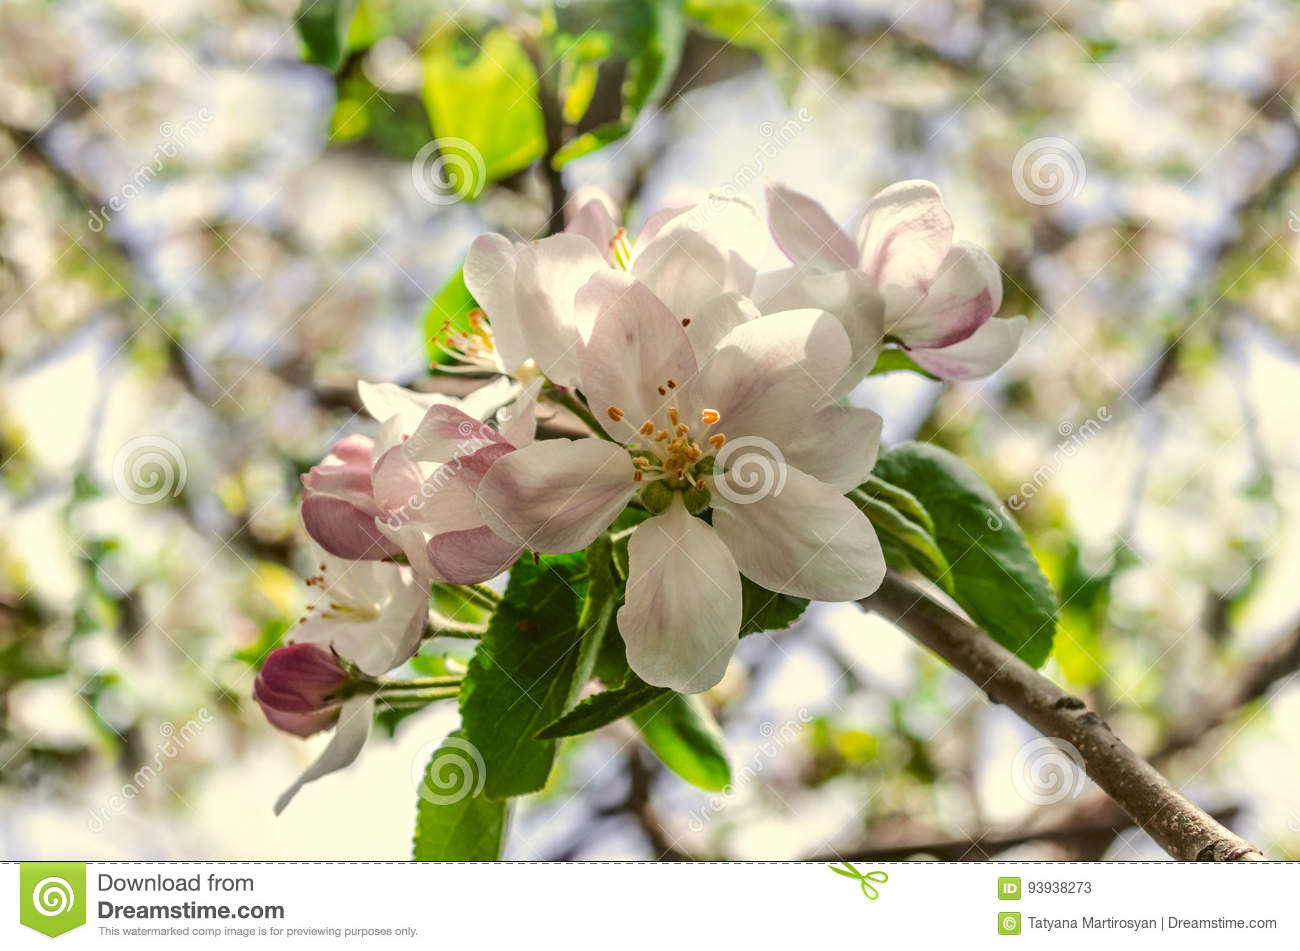 Apple Tree With Large Pink White Flowers Stock Image Image Of